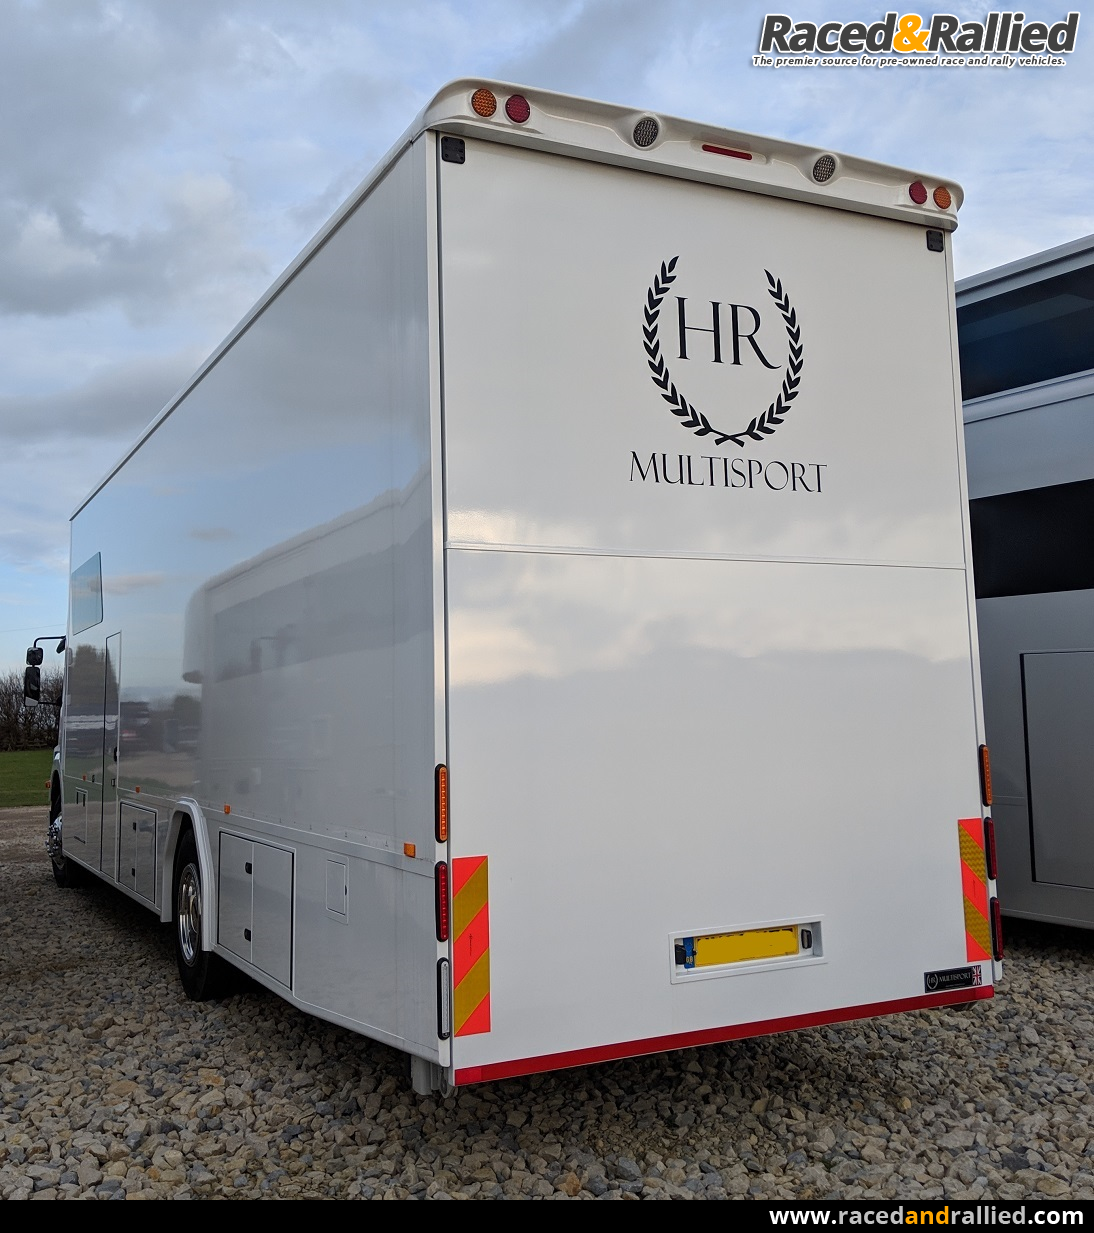 Mercedes race truck with Dhollandia Lift and slide out